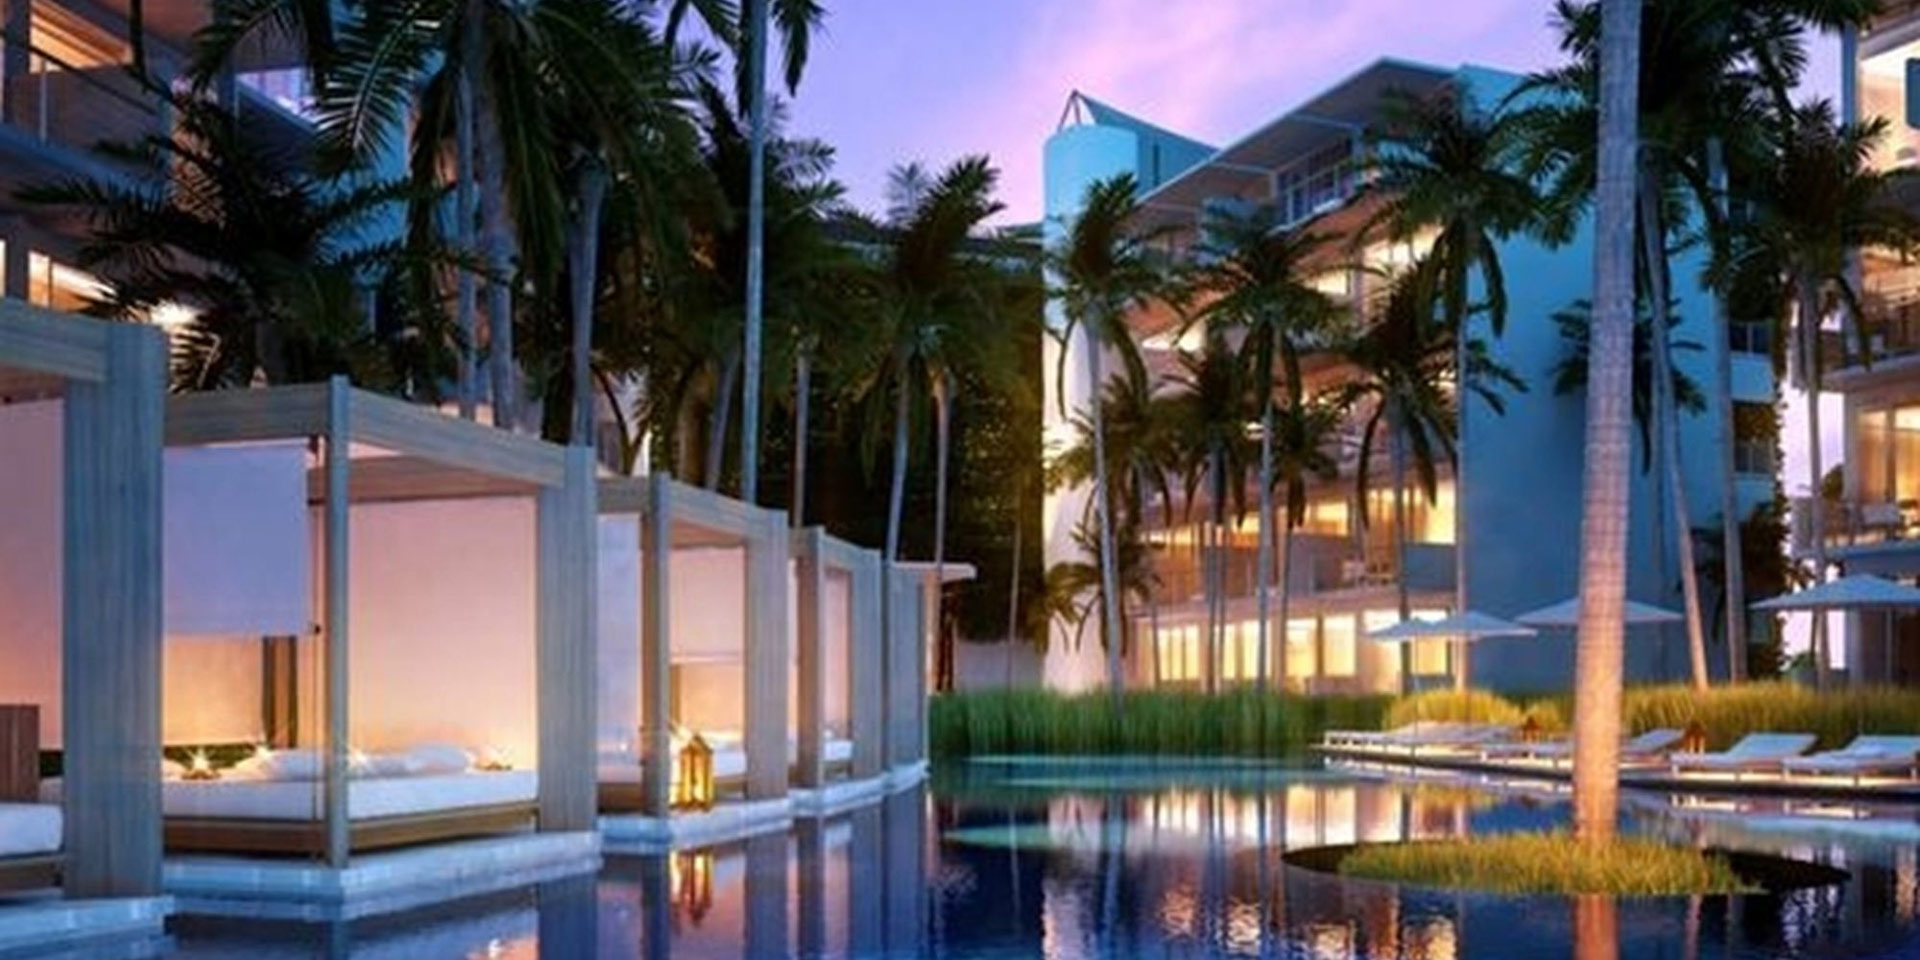 How Dream Hotel Group is bringing high luxury to smaller markets